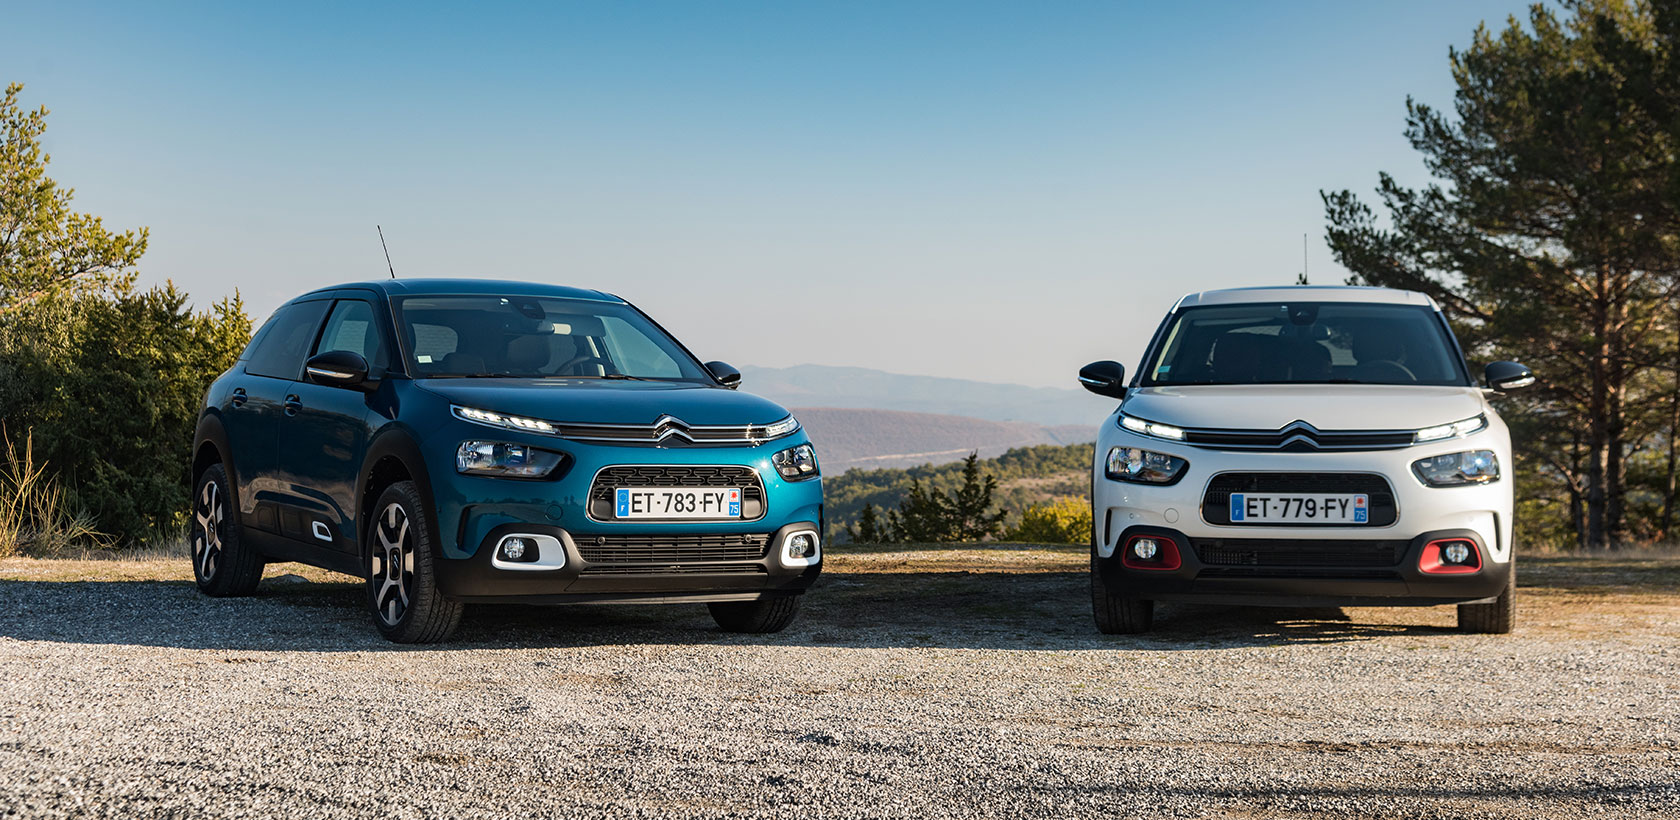 La Nouvelle C4 Cactus disponible en Tunisie